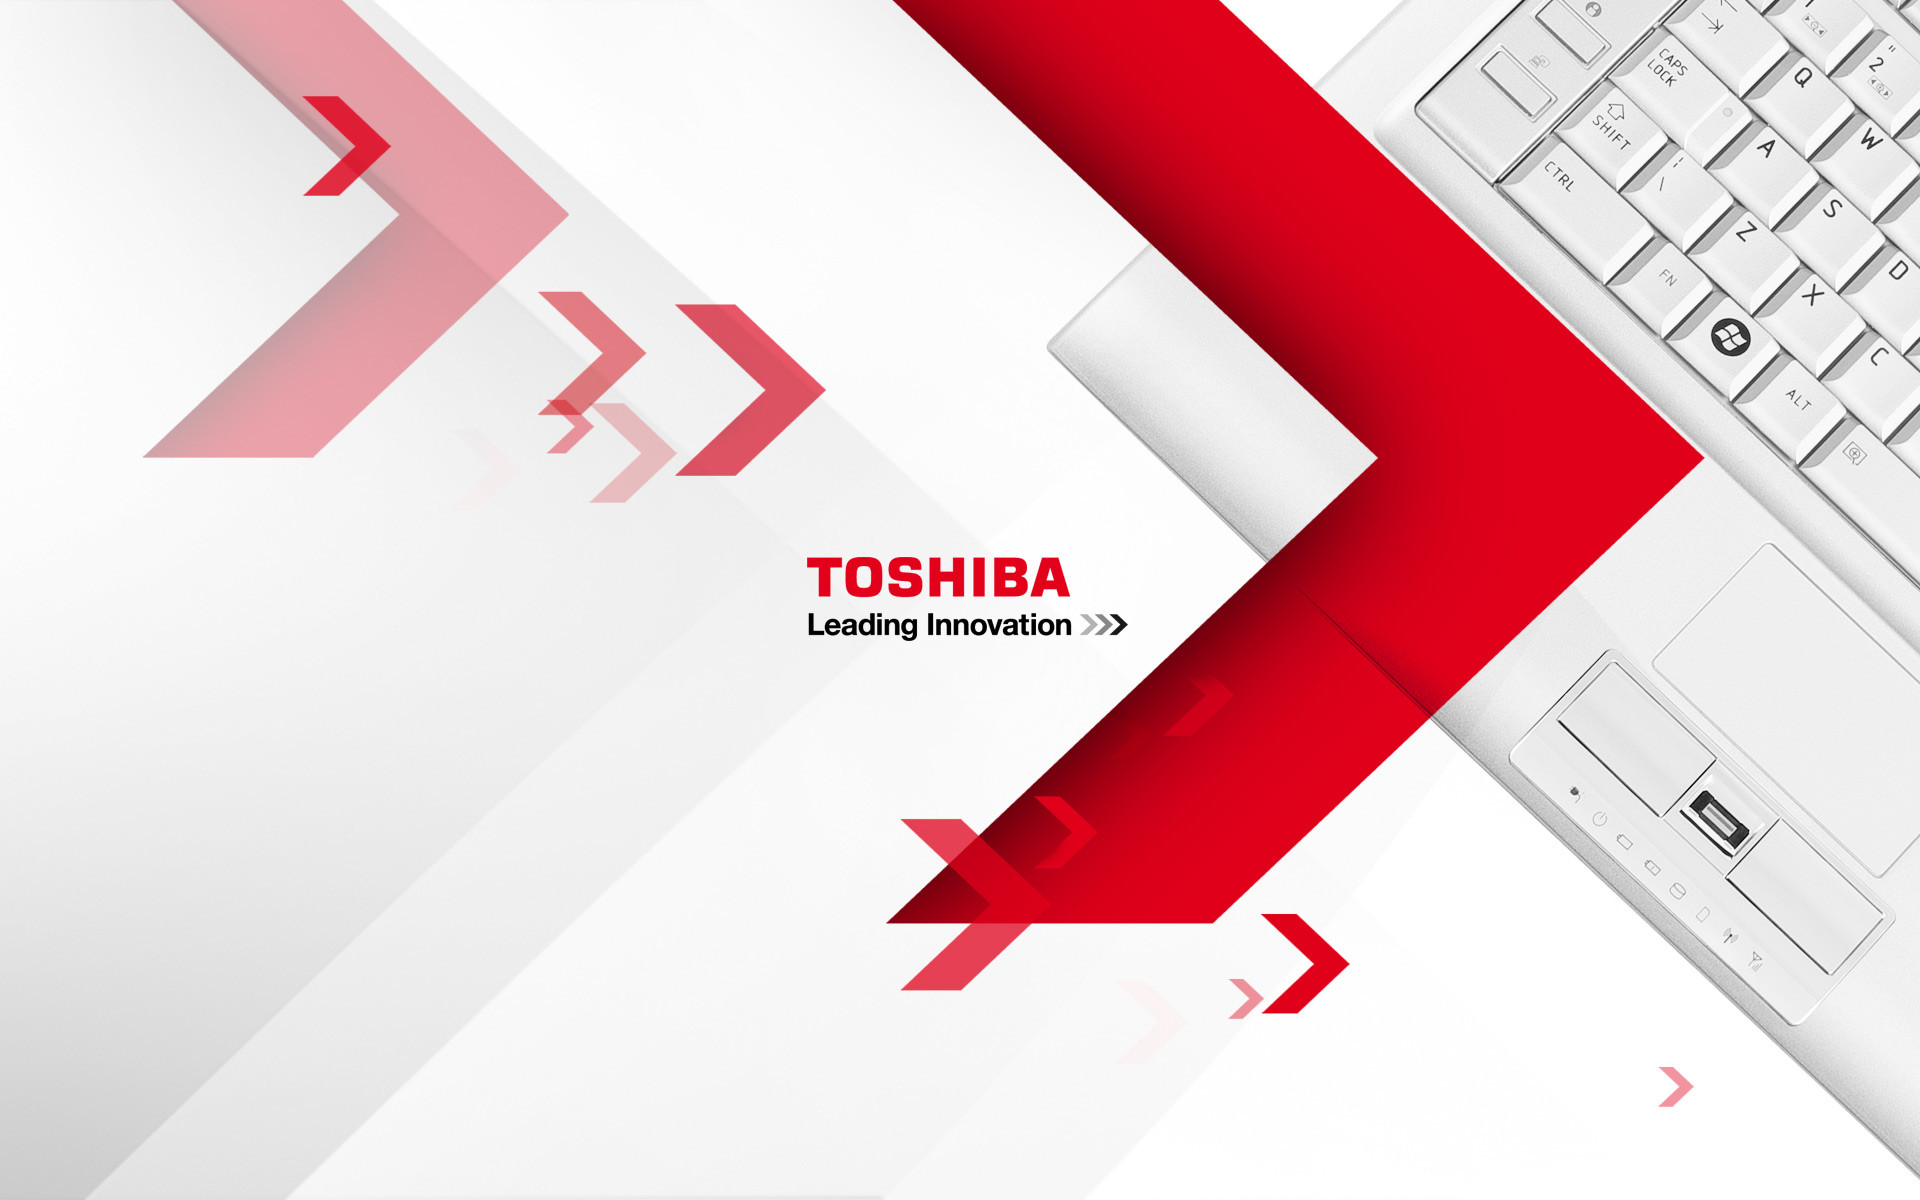 Toshiba Backgrounds Wallpapers (65 Wallpapers)